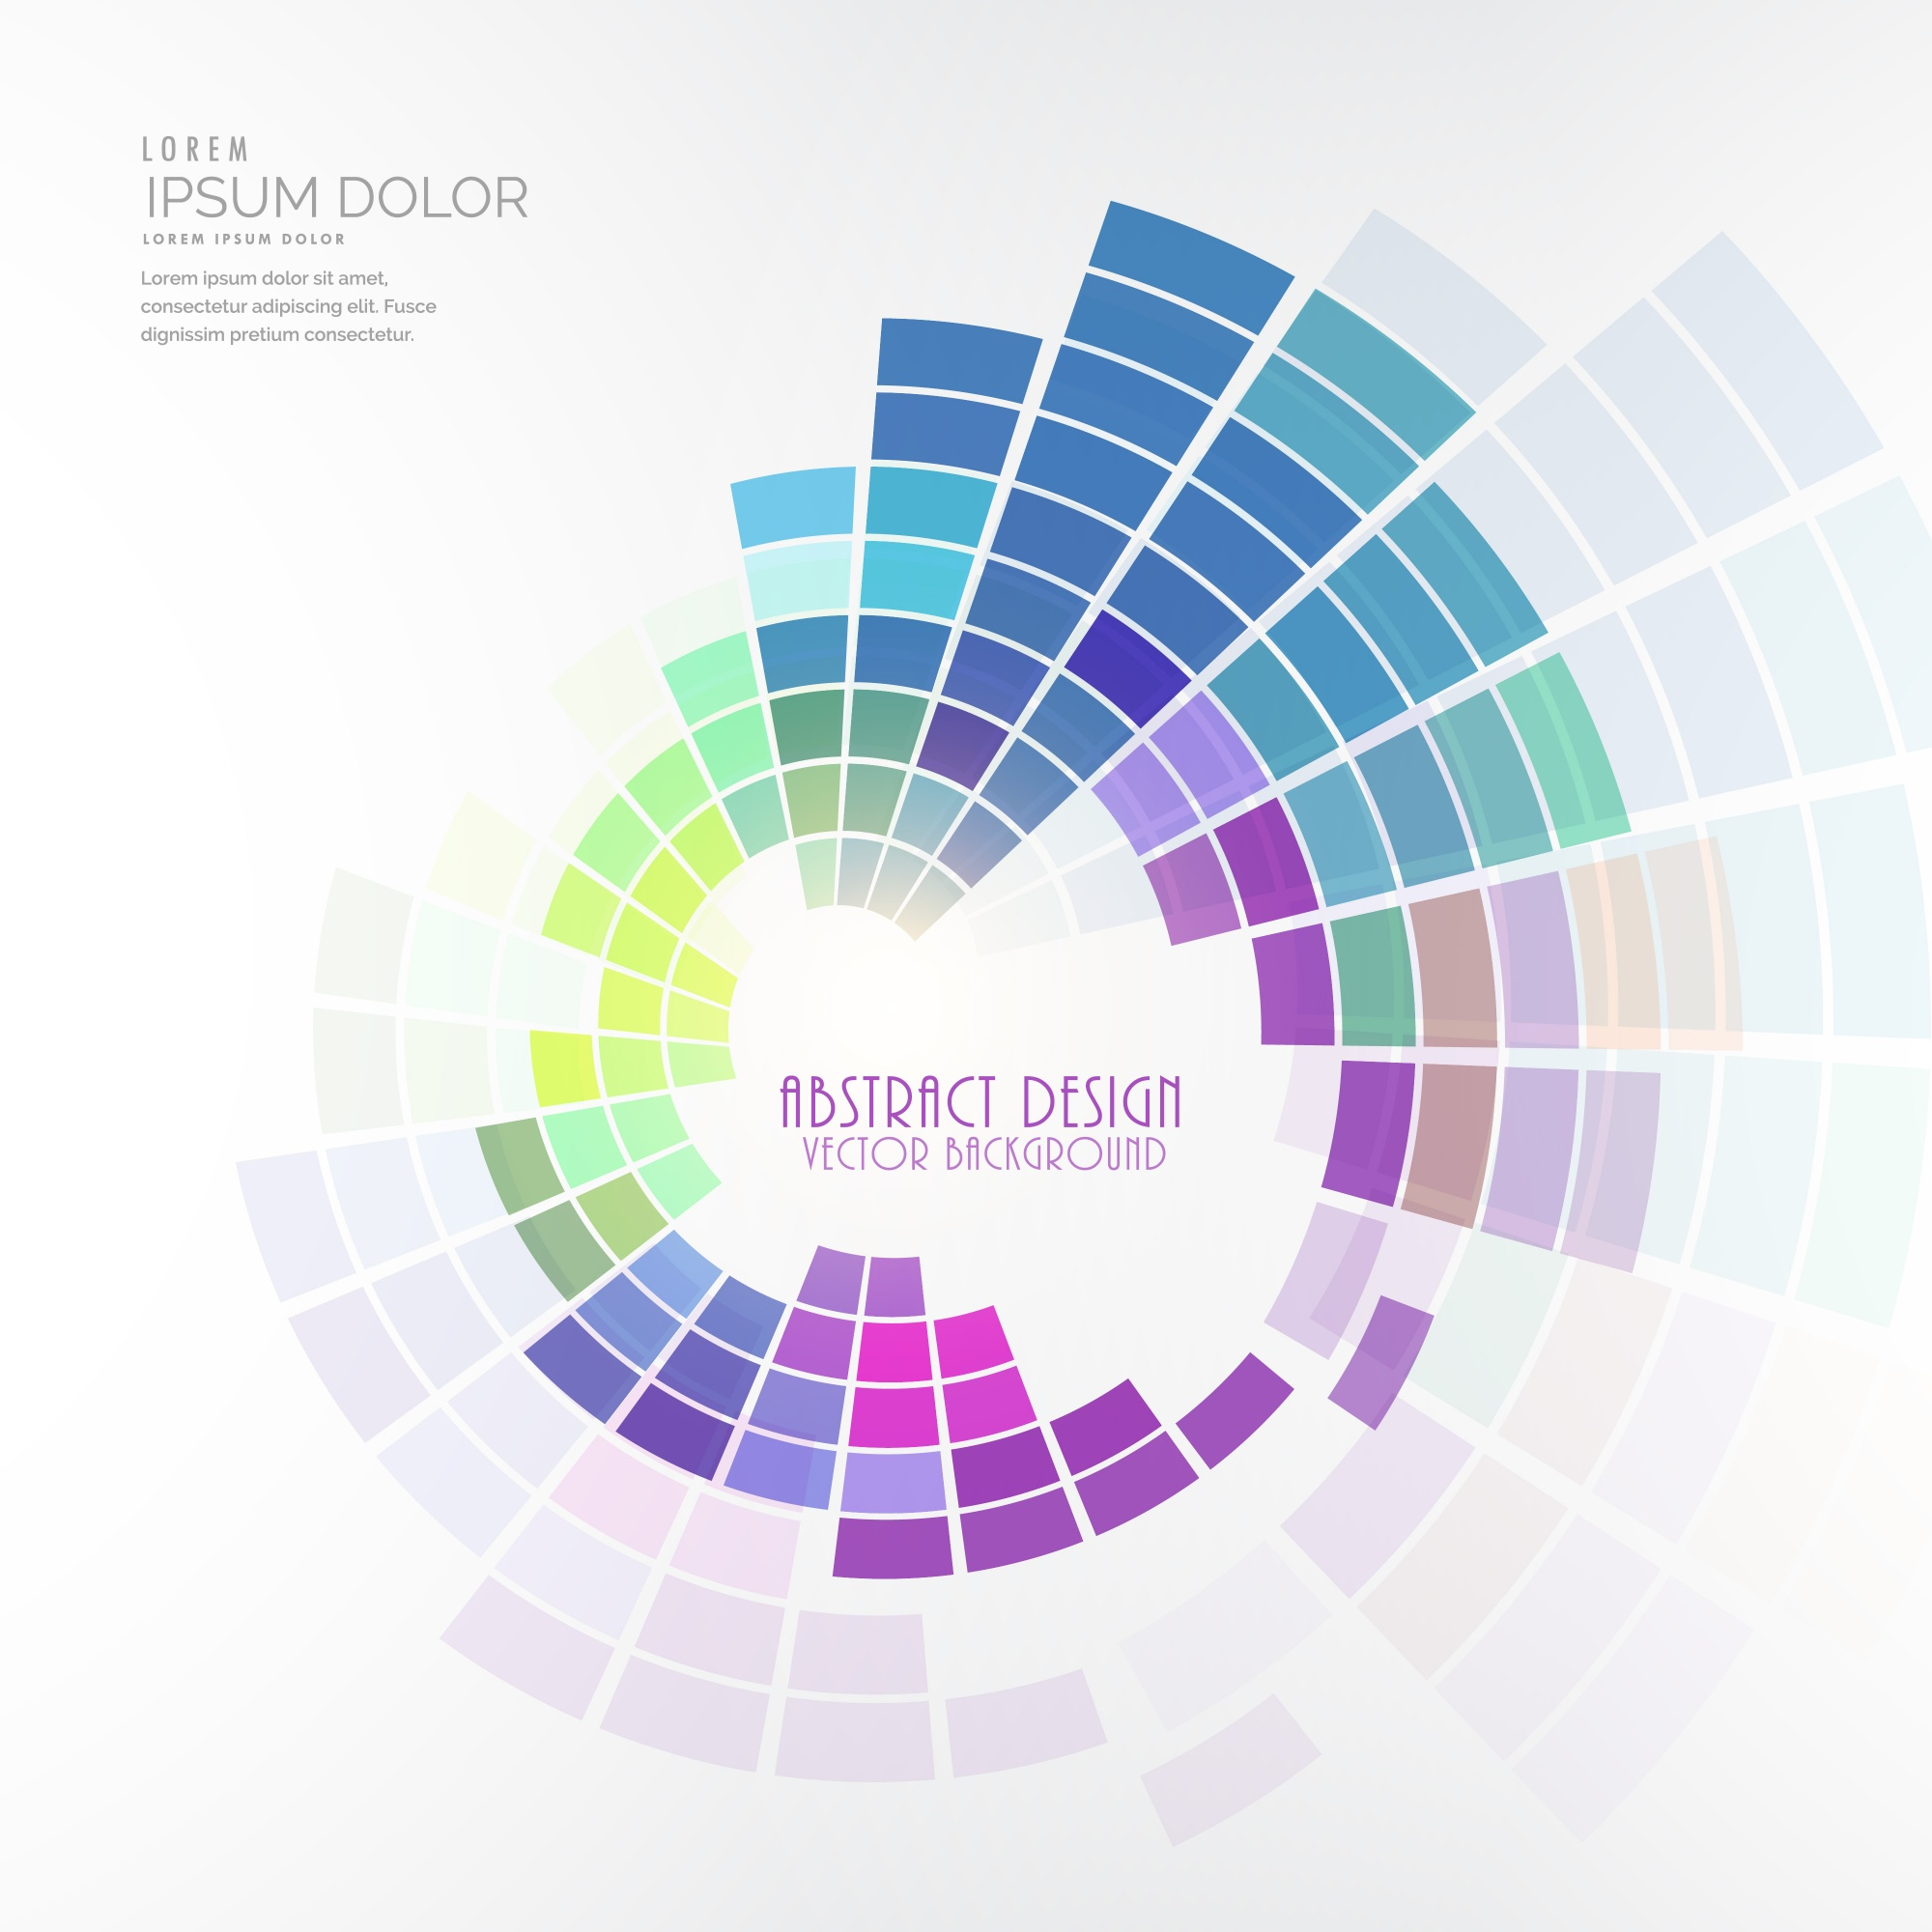 Abstract background with circular color palette